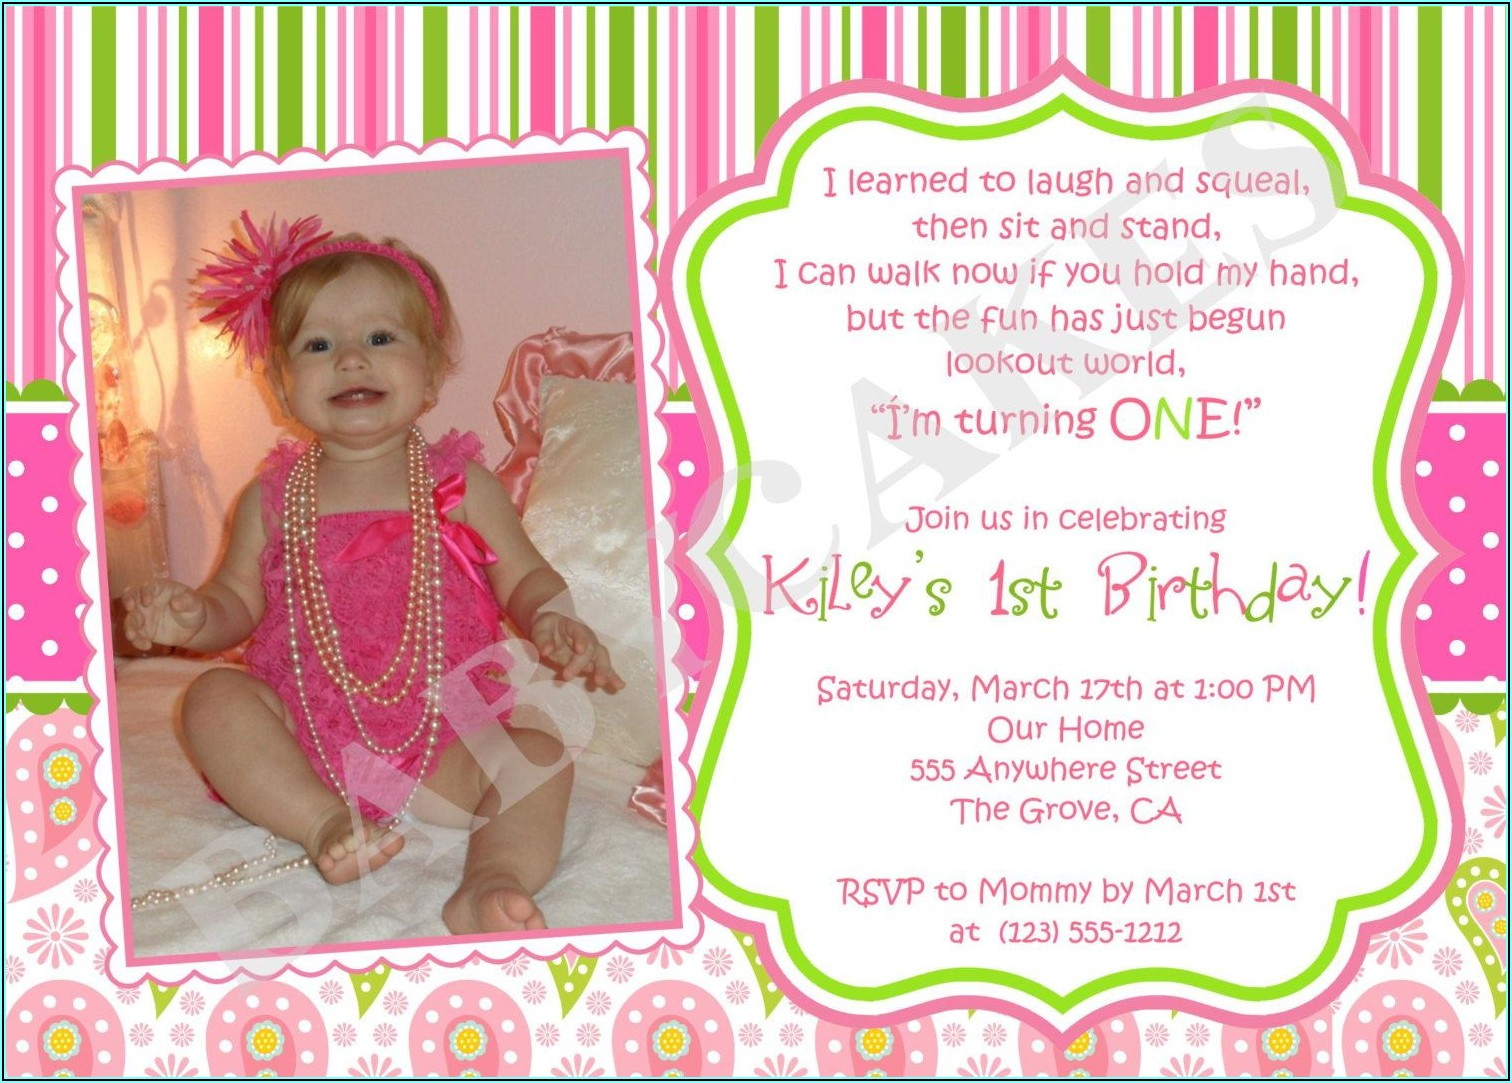 Personalized Baby Girl's 1st Birthday Invitations